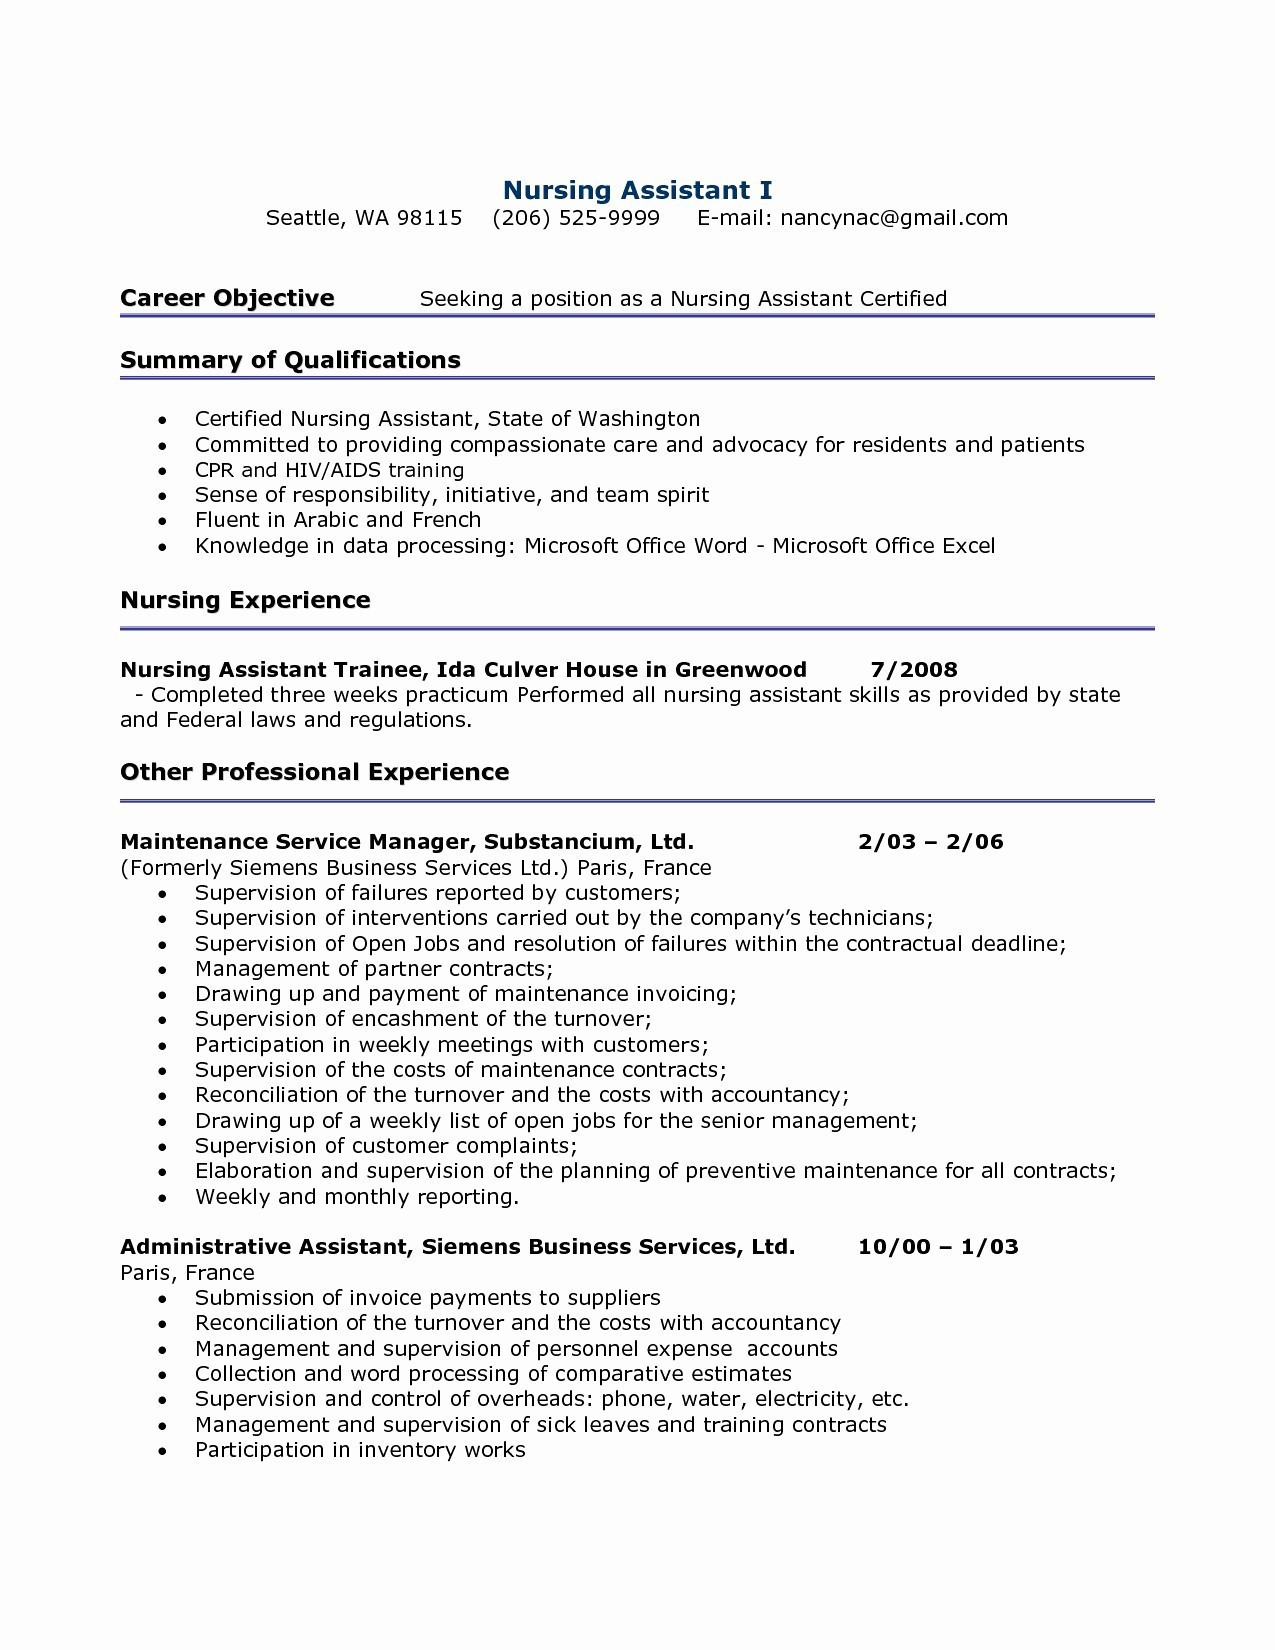 Resume Self Descriptive Words - 17 Self Descriptive Words for Resume